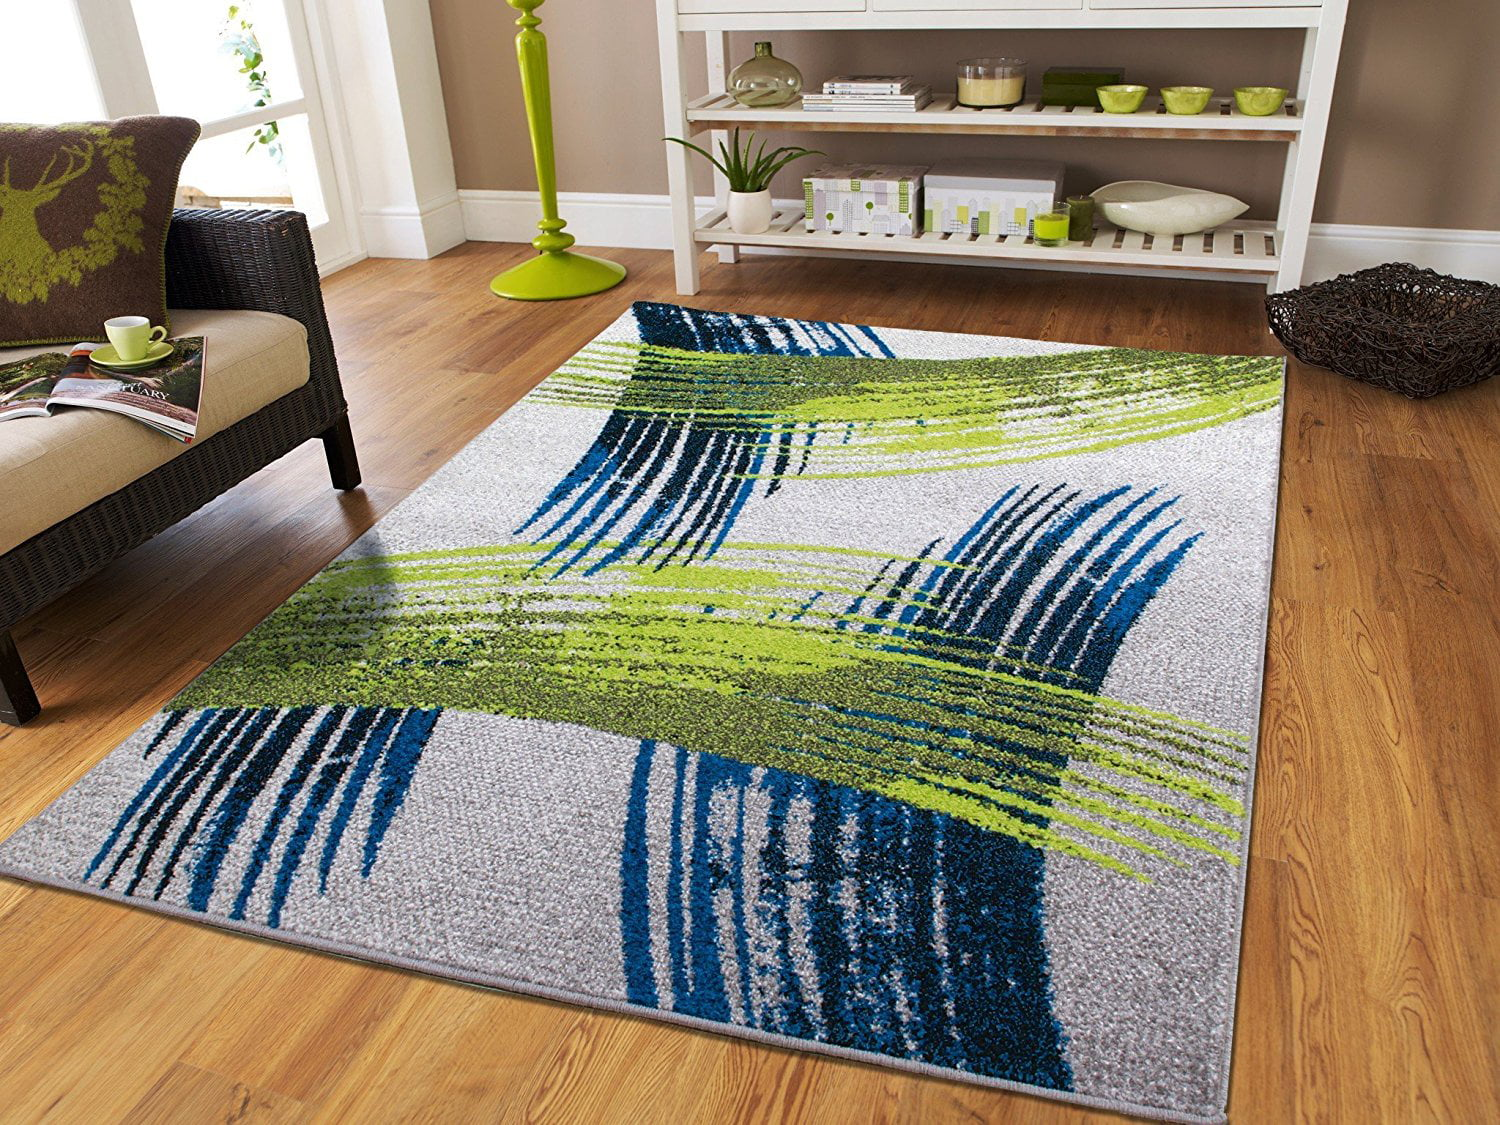 living room rugs 8x10 ideas modern 2017 large on clearance 8 by 10 green area under 100 dining for the table walmart com